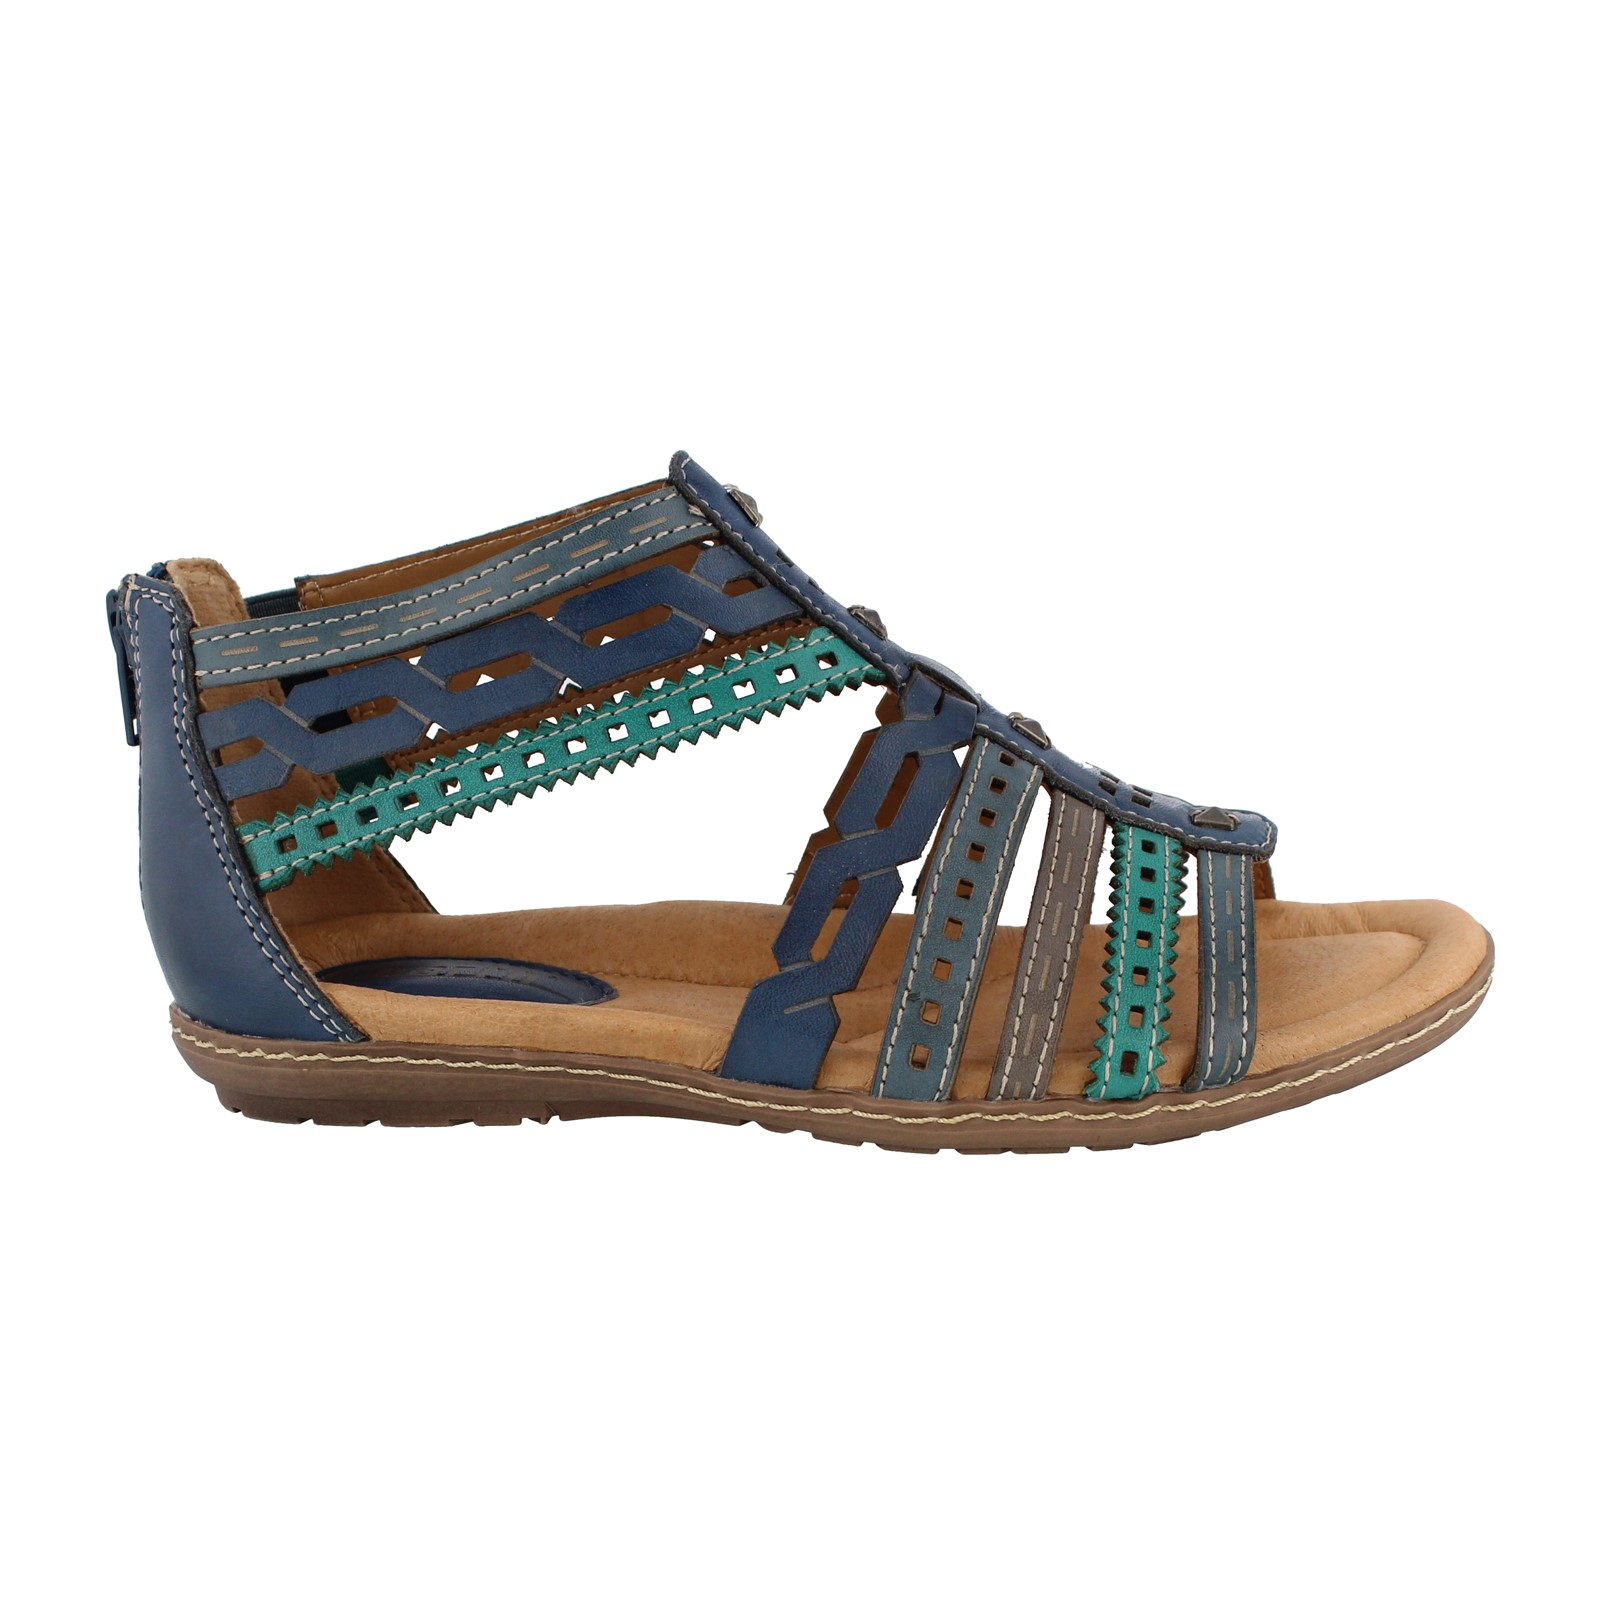 Women's Earth, Bay Sandal